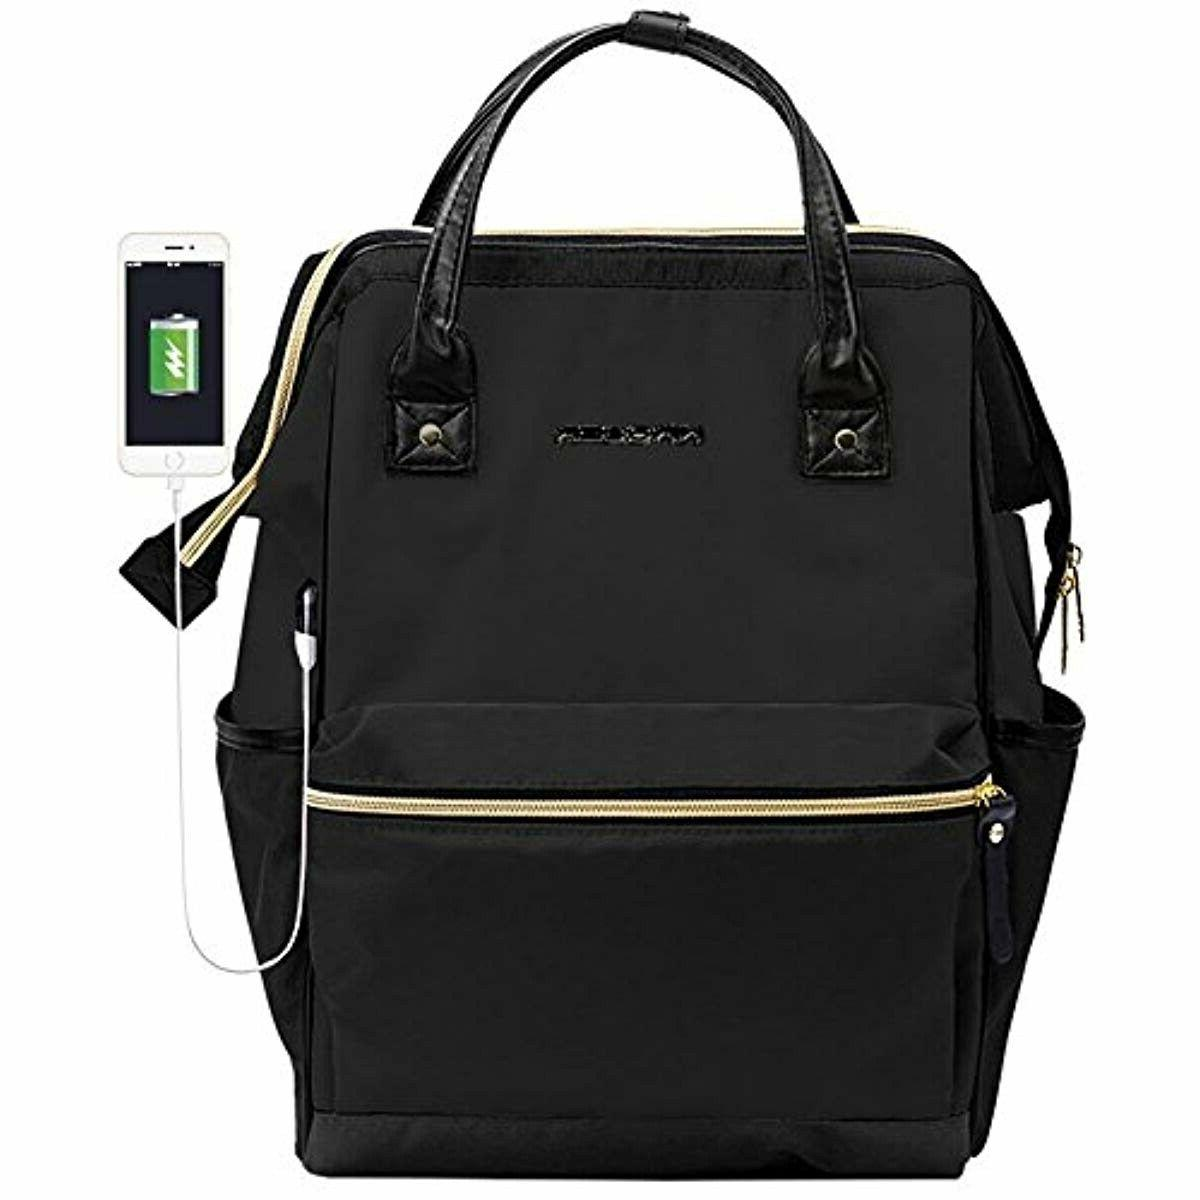 laptop backpack 15 6 inch bag casual